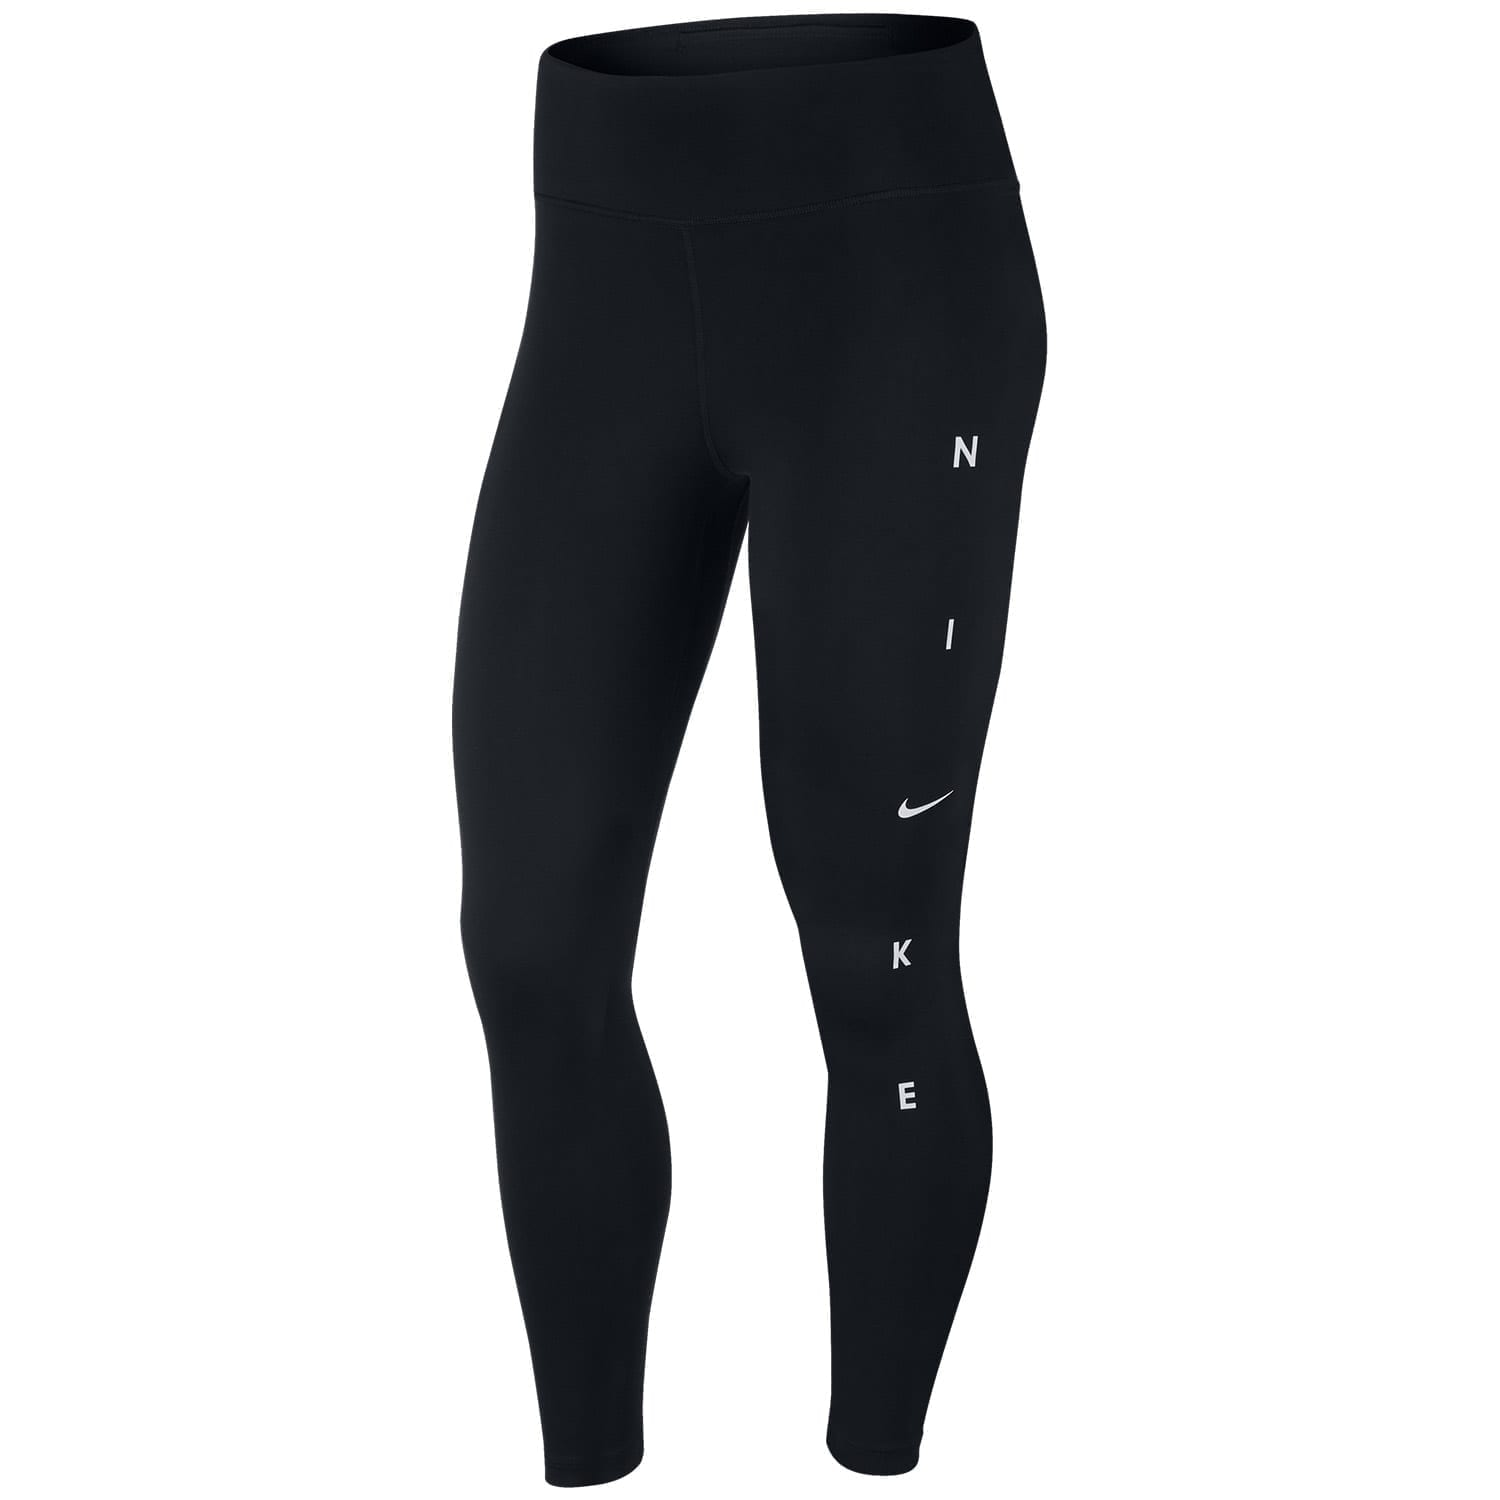 NIKE ONE7/8 Damen-Tight